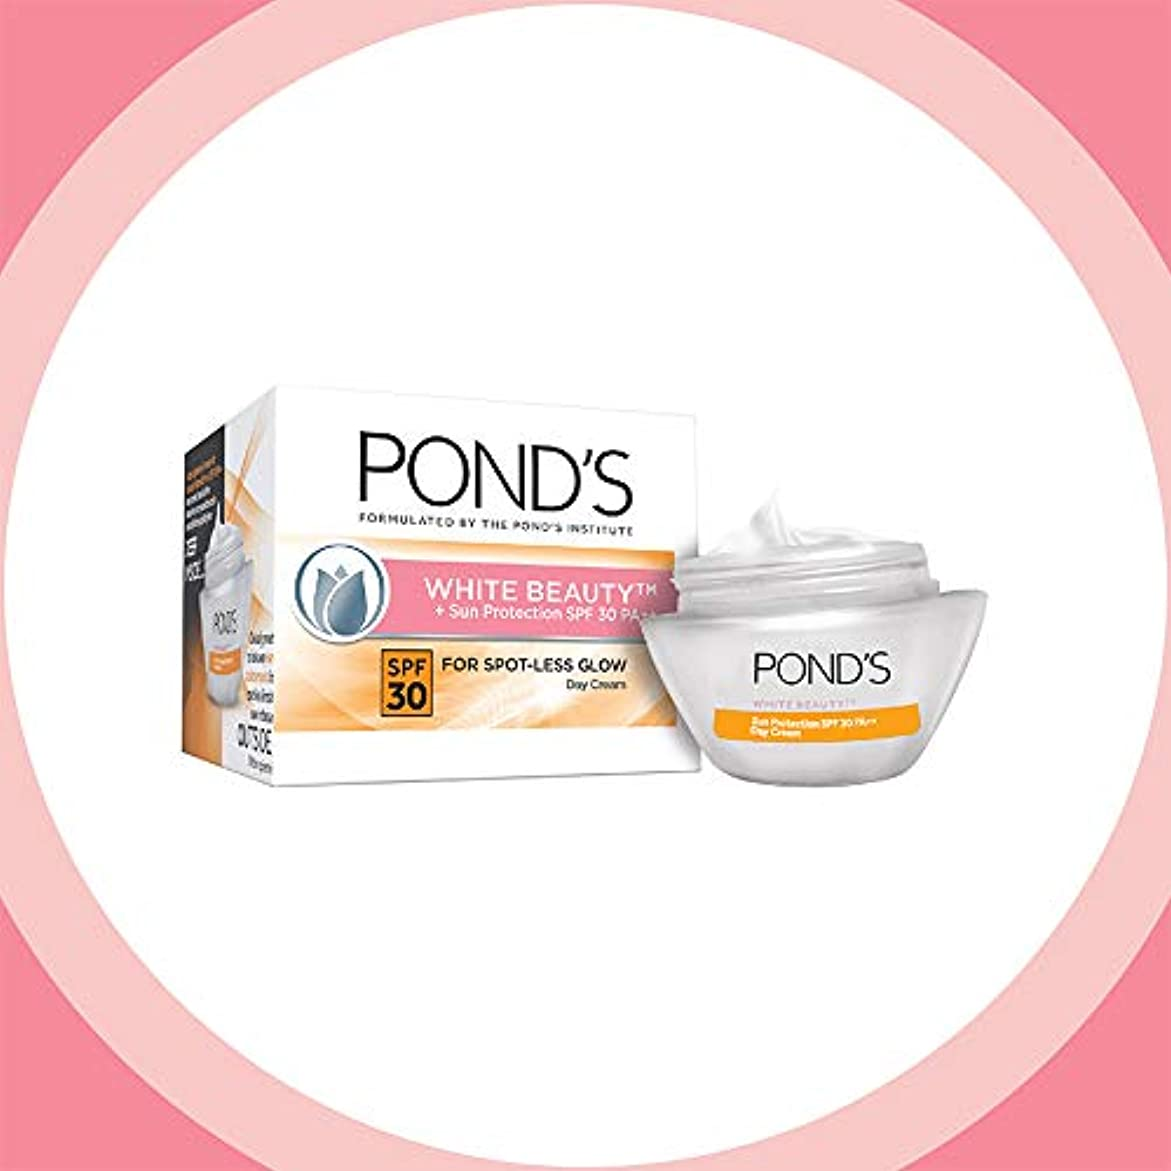 ガウン背の高い大宇宙POND'S White Beauty Sun Protection SPF 30 Day Cream, 35 gms (並行インポート) India